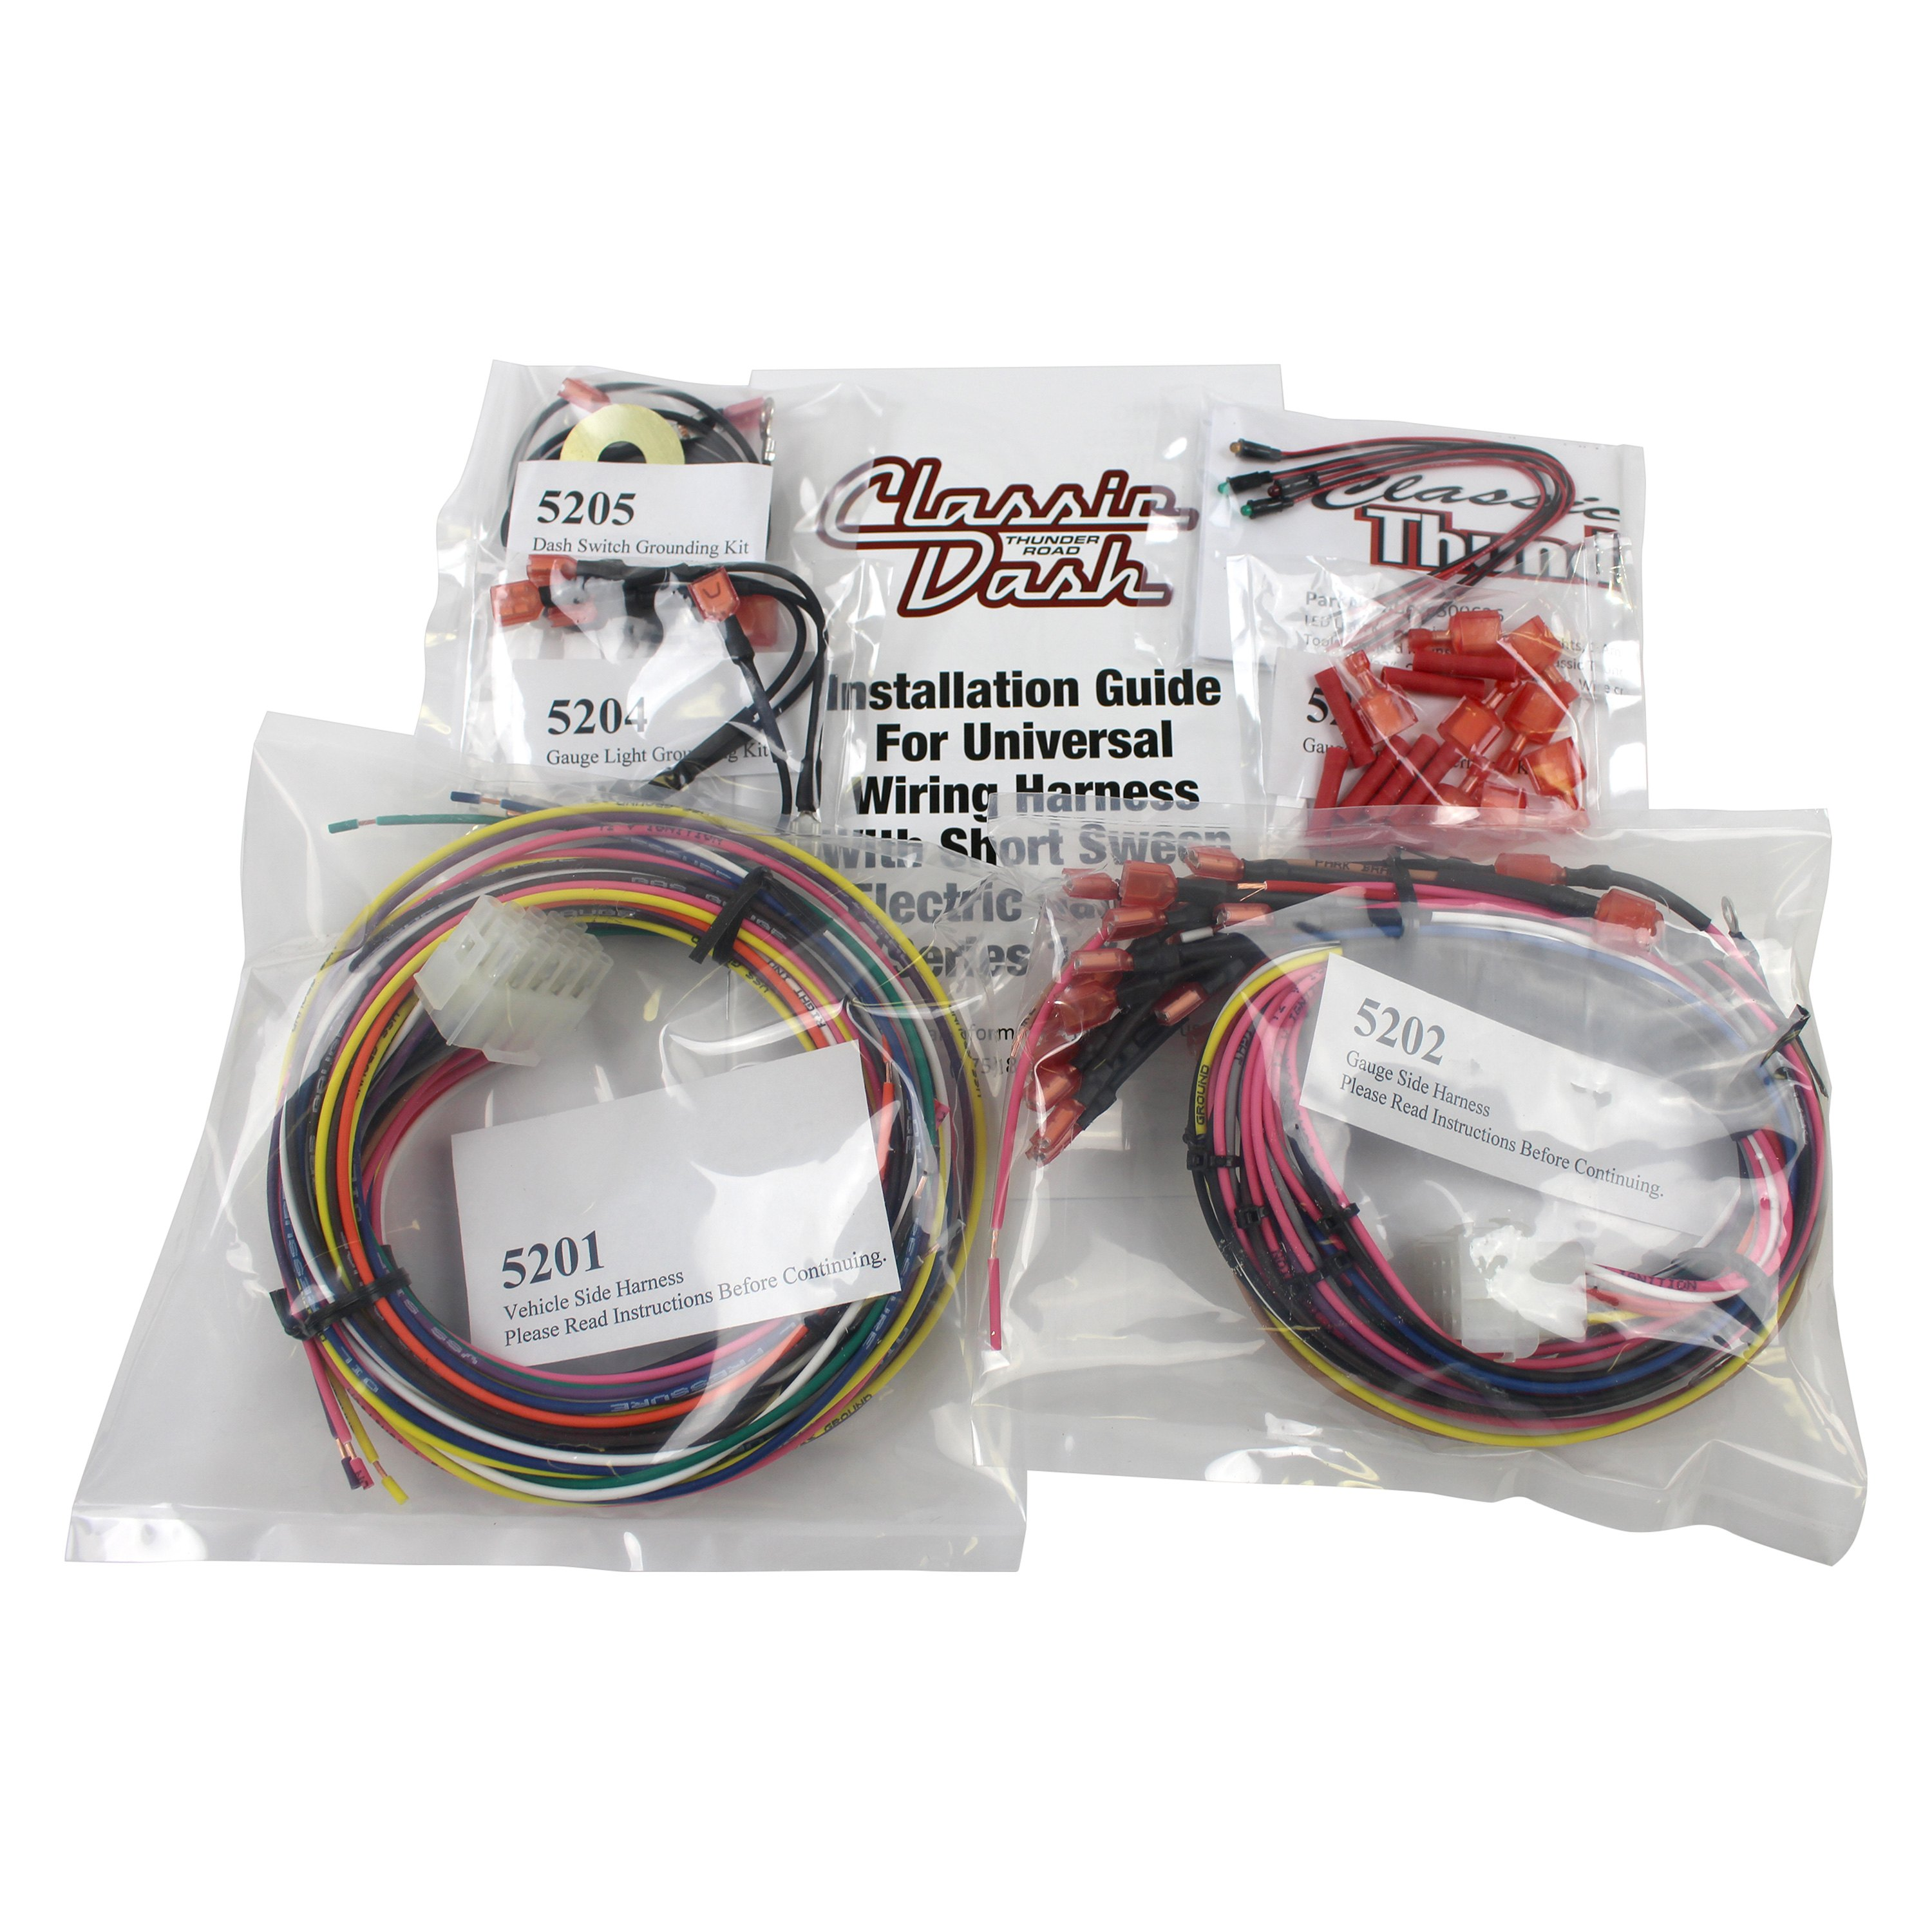 110 67 5200 classic dash® 110 67 5200 wiring harness complete with led kit